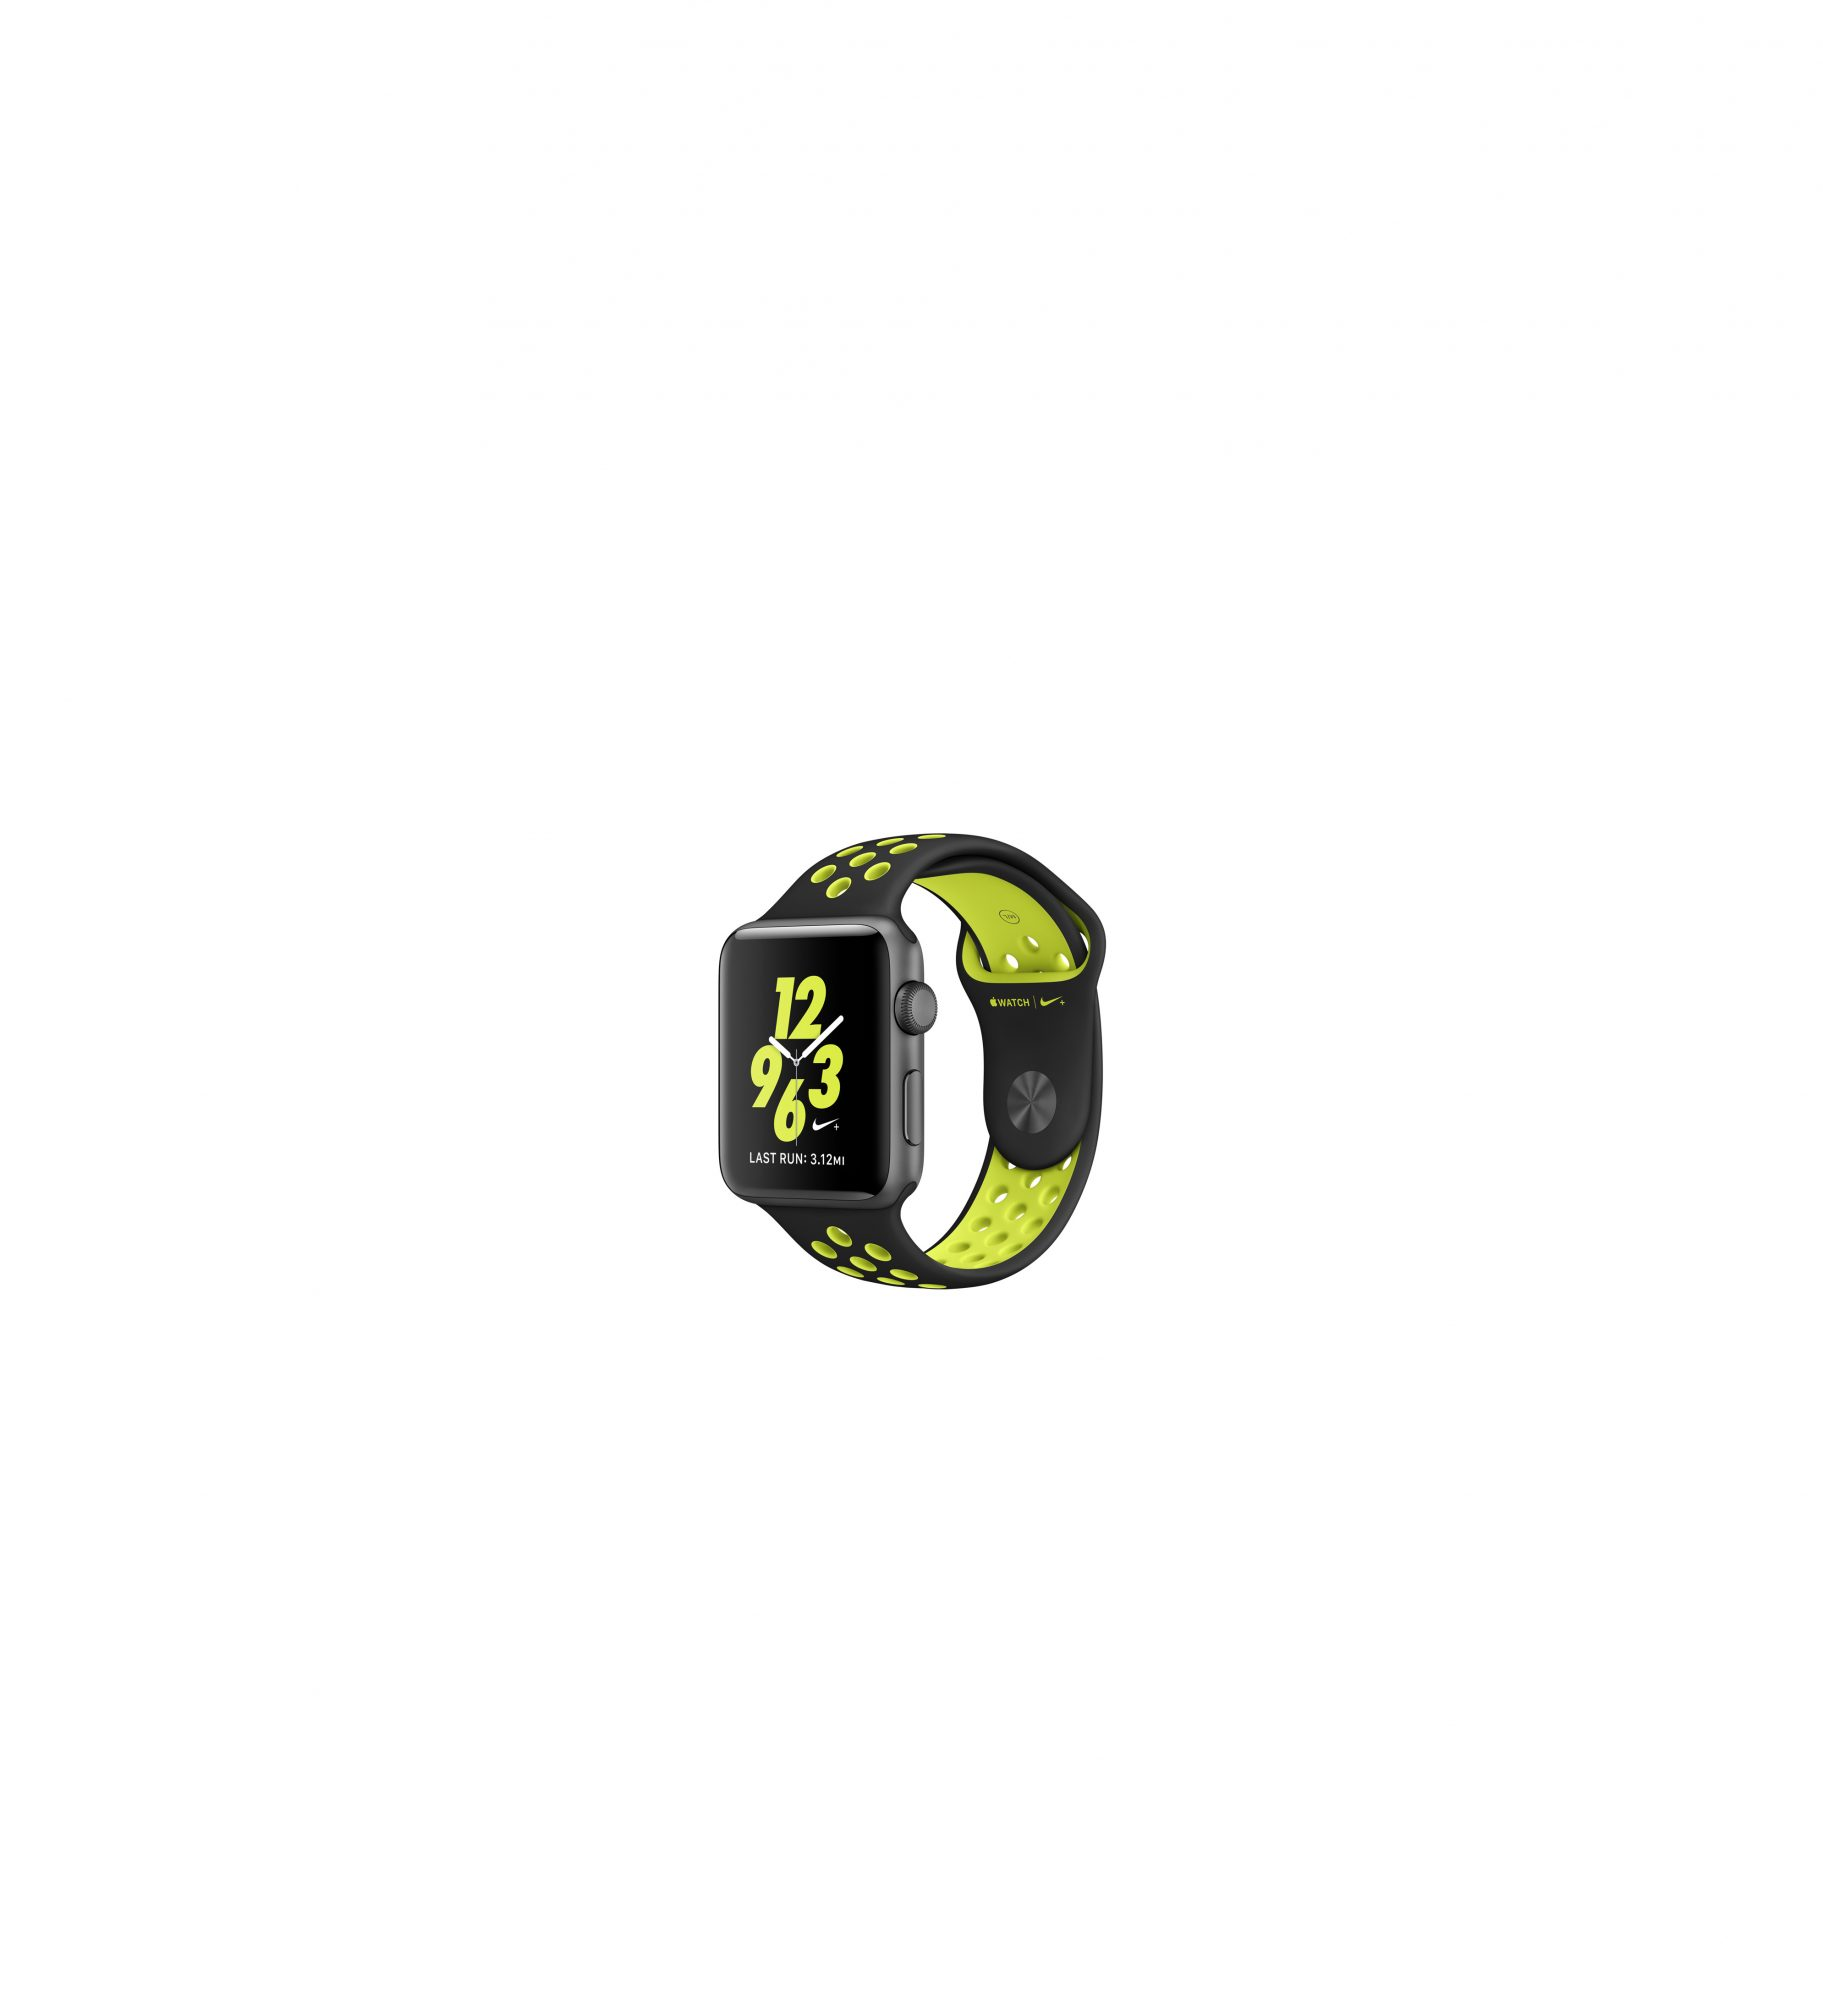 accurate for workout watch how to tracking wathow activity calibrate watches start and apple